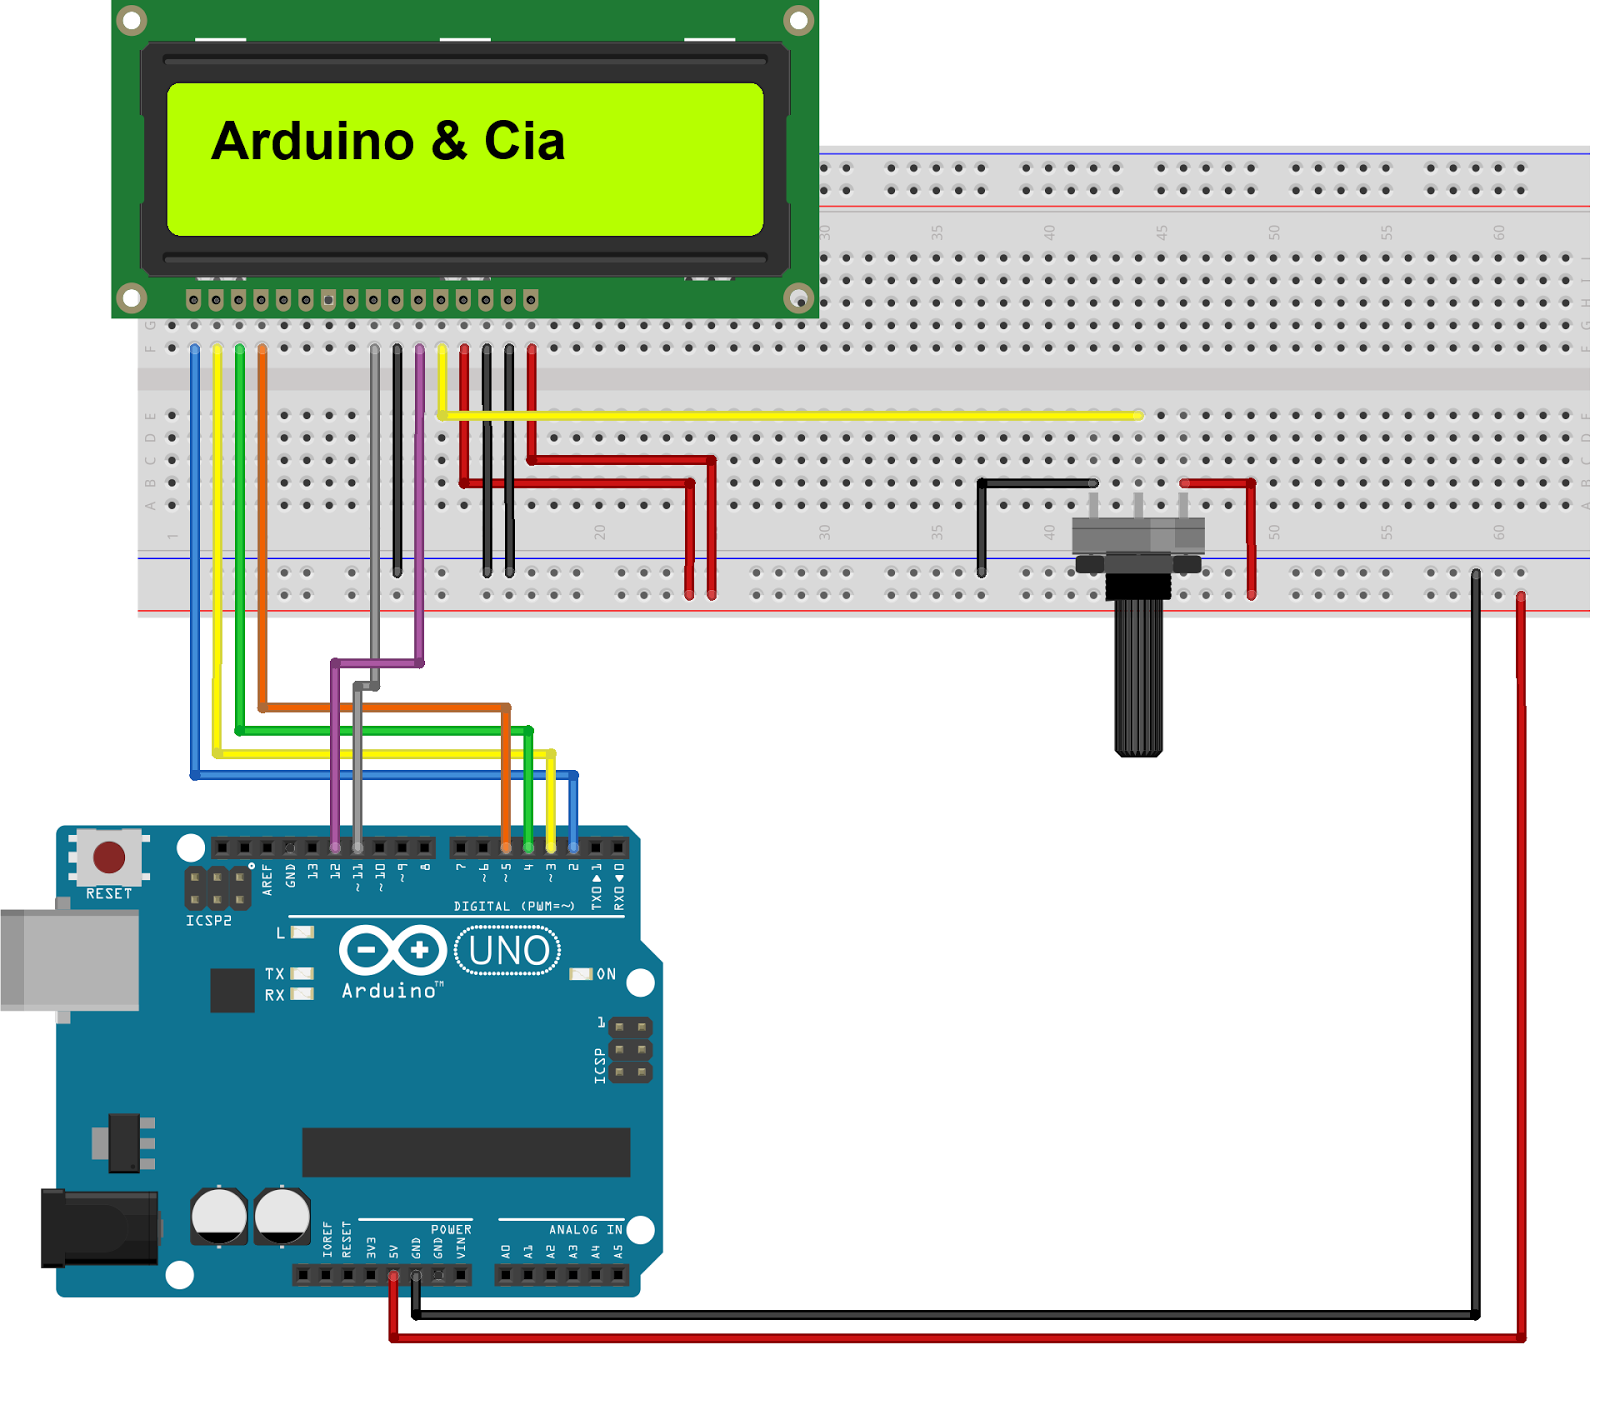 Circuito Scroll LCD 16x2 Arduino